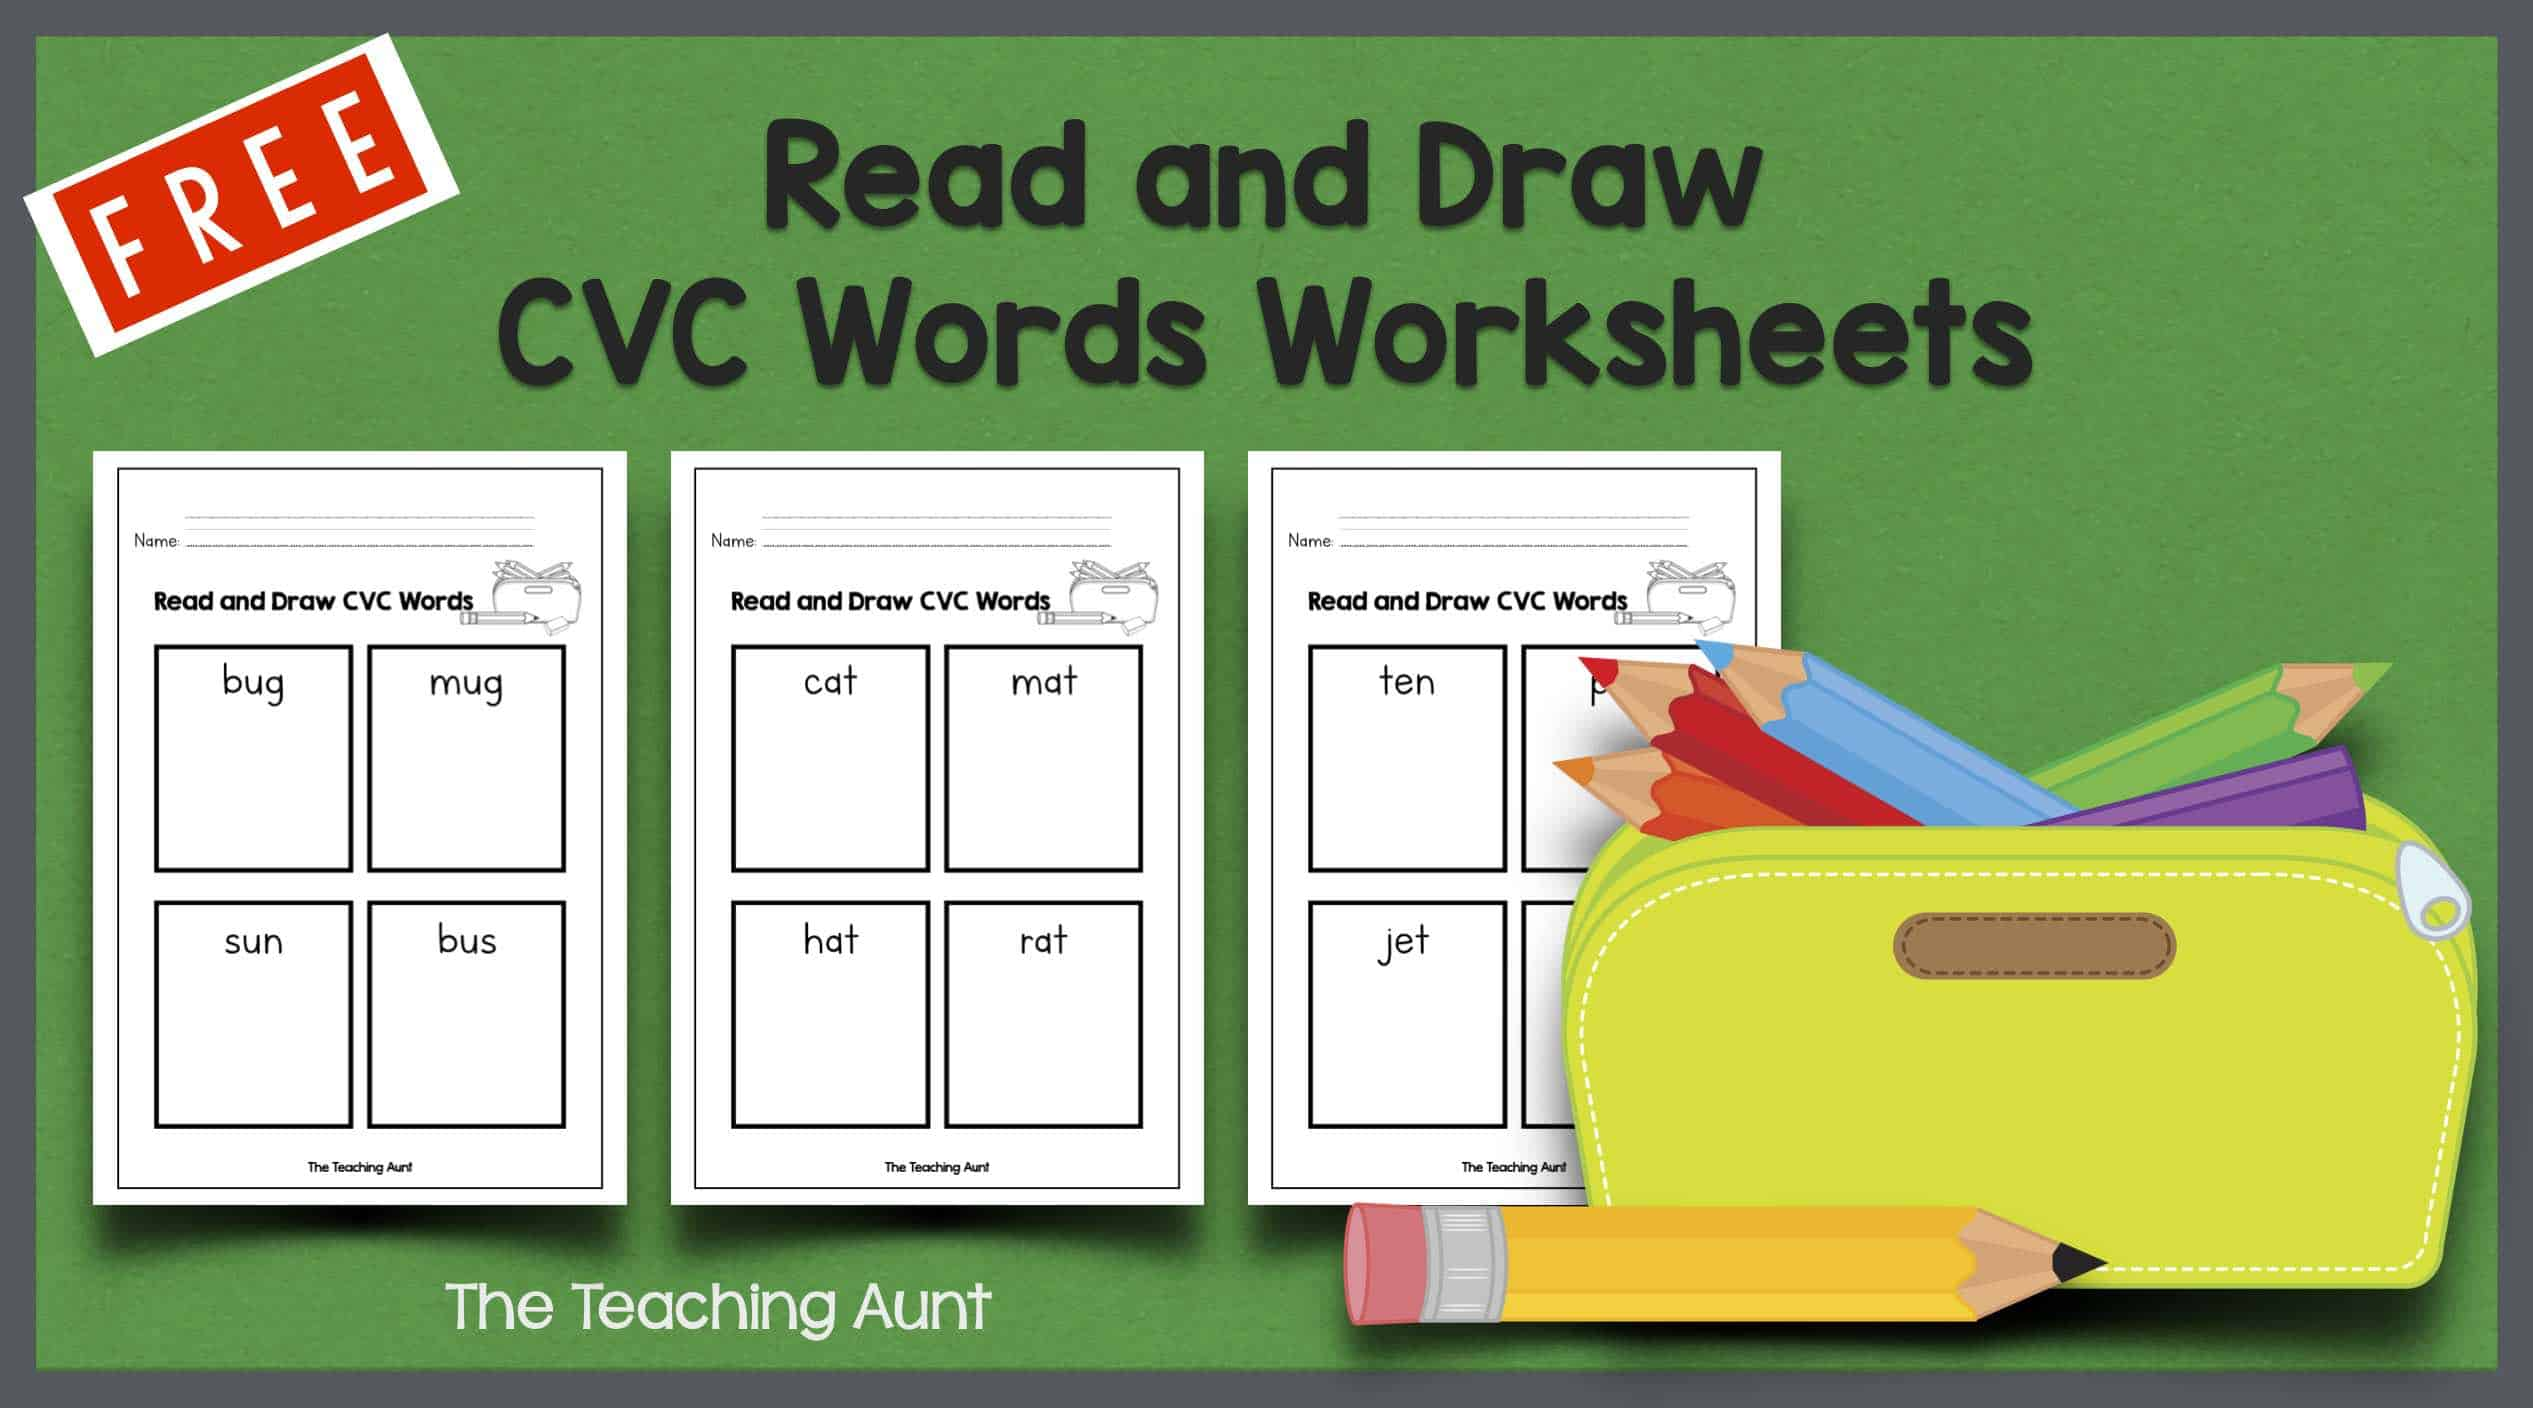 Read and Draw CVC Words Worksheets